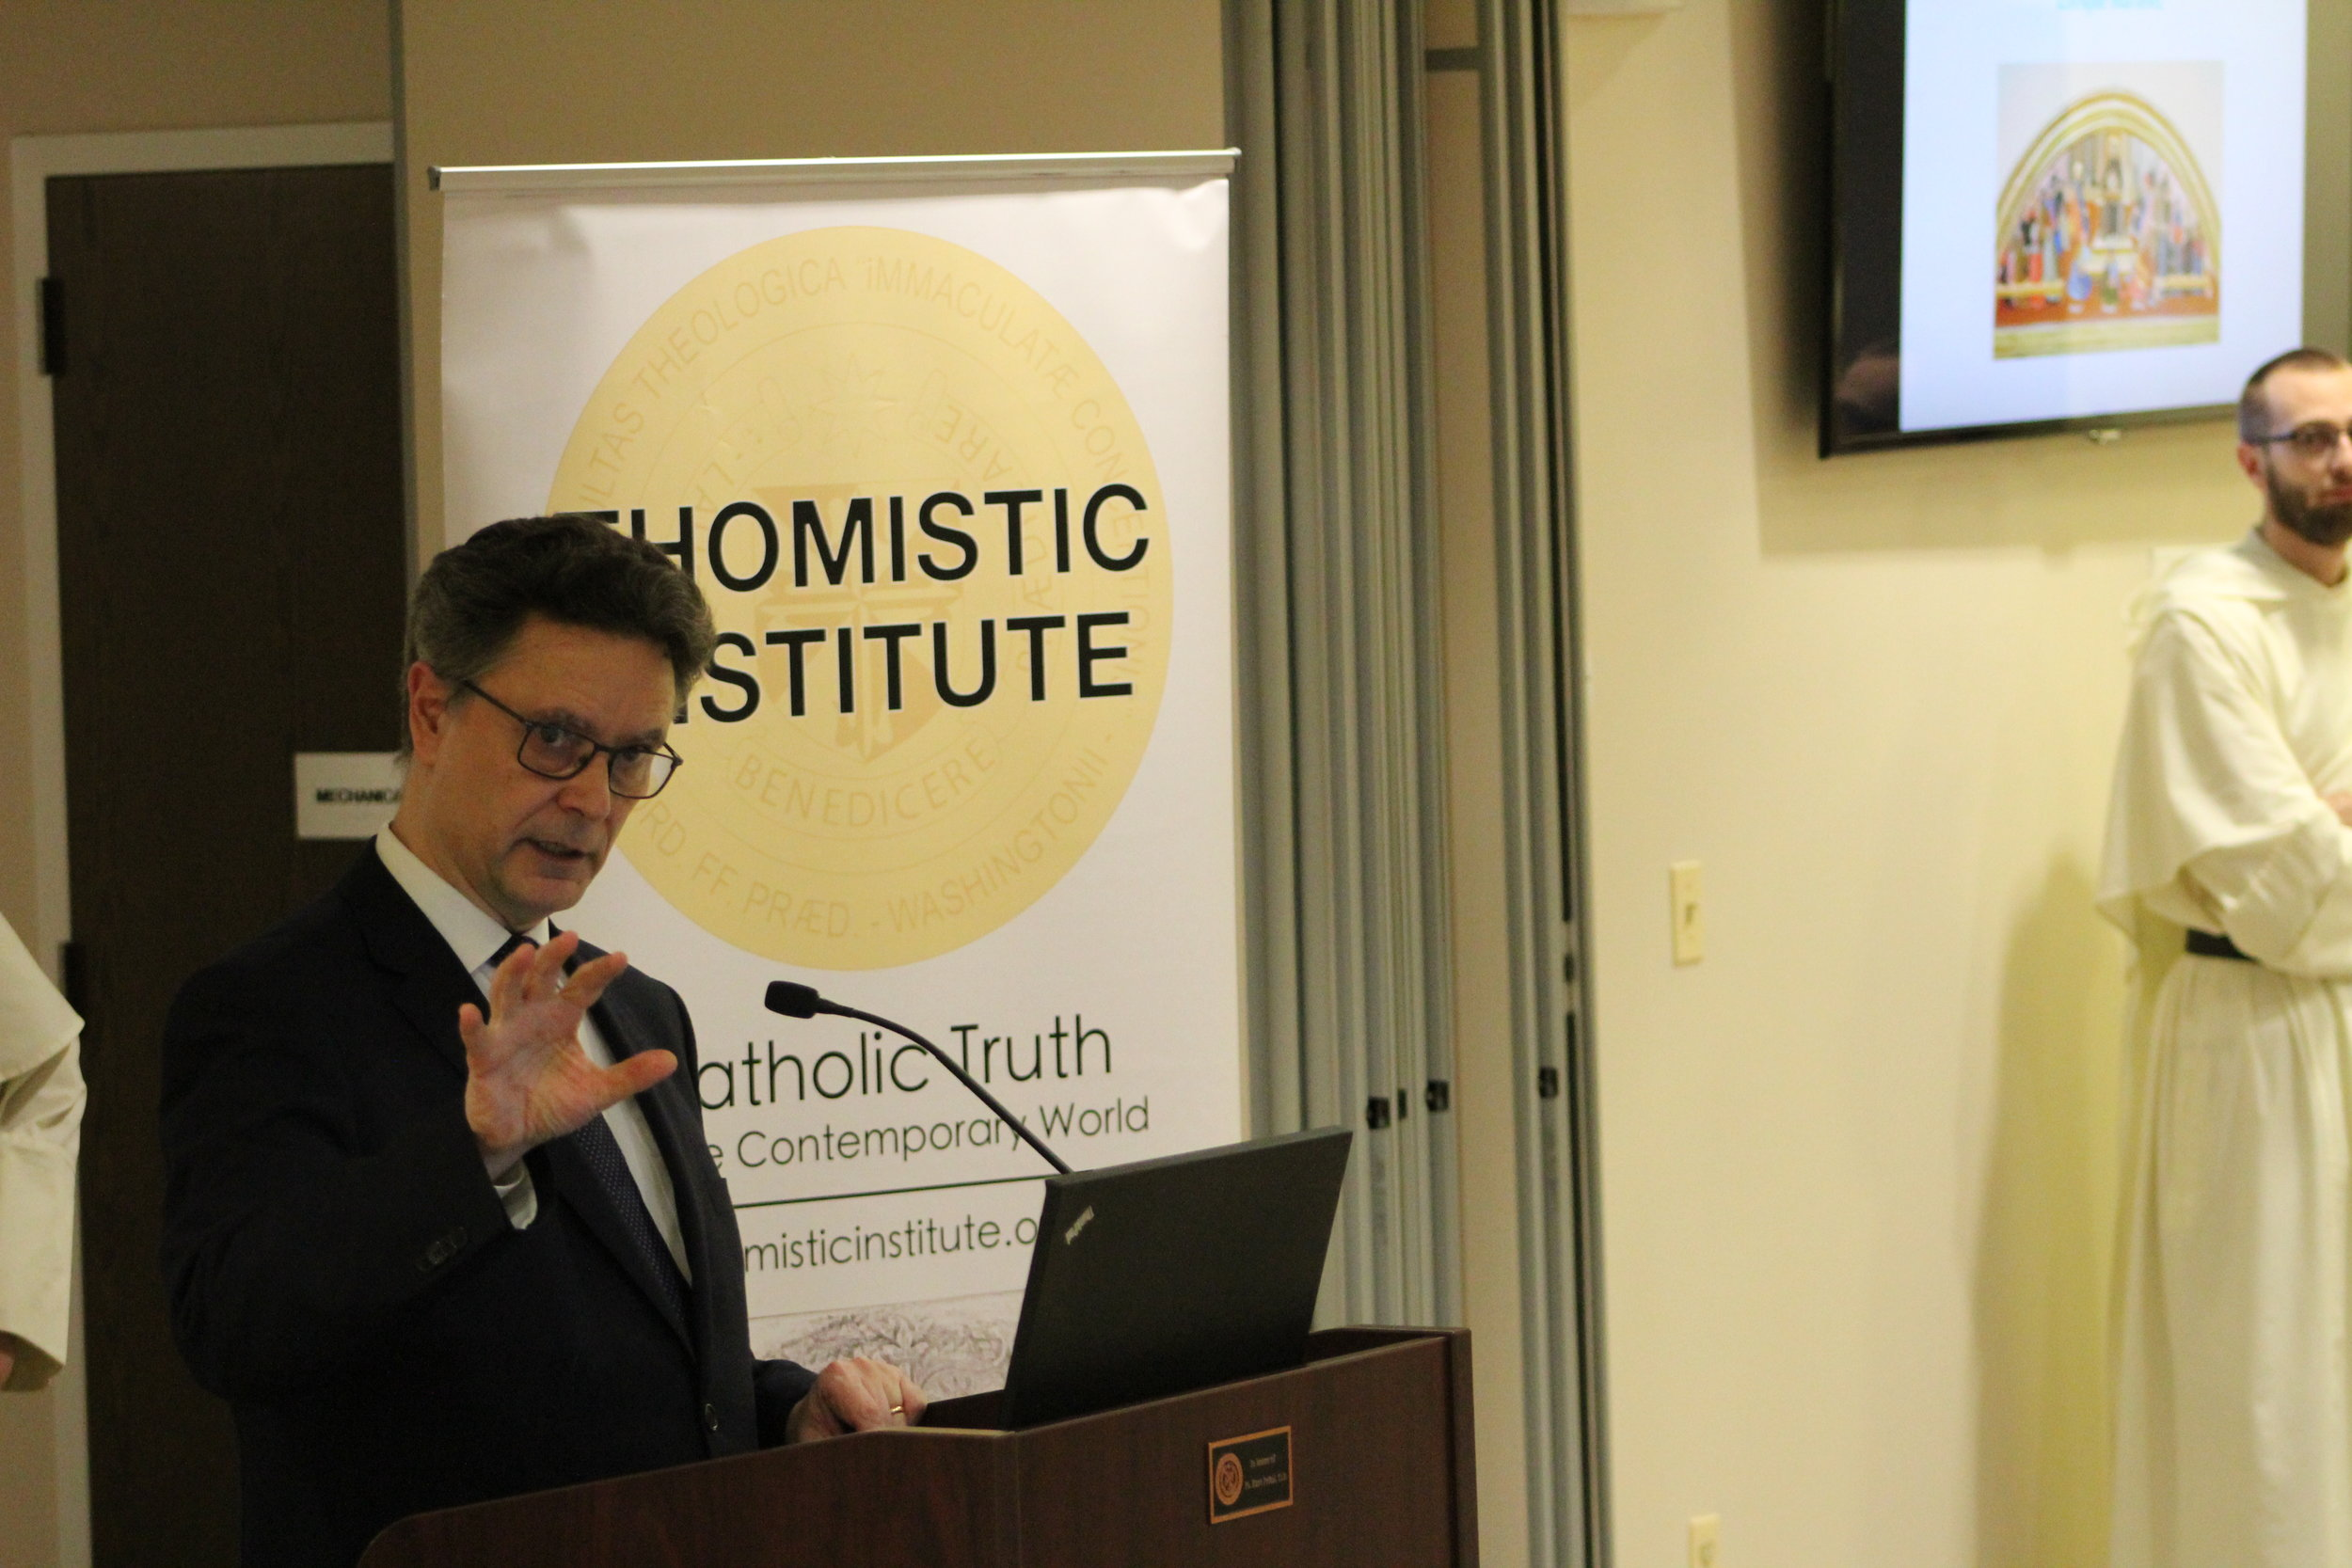 Latest News — The Thomistic Institute